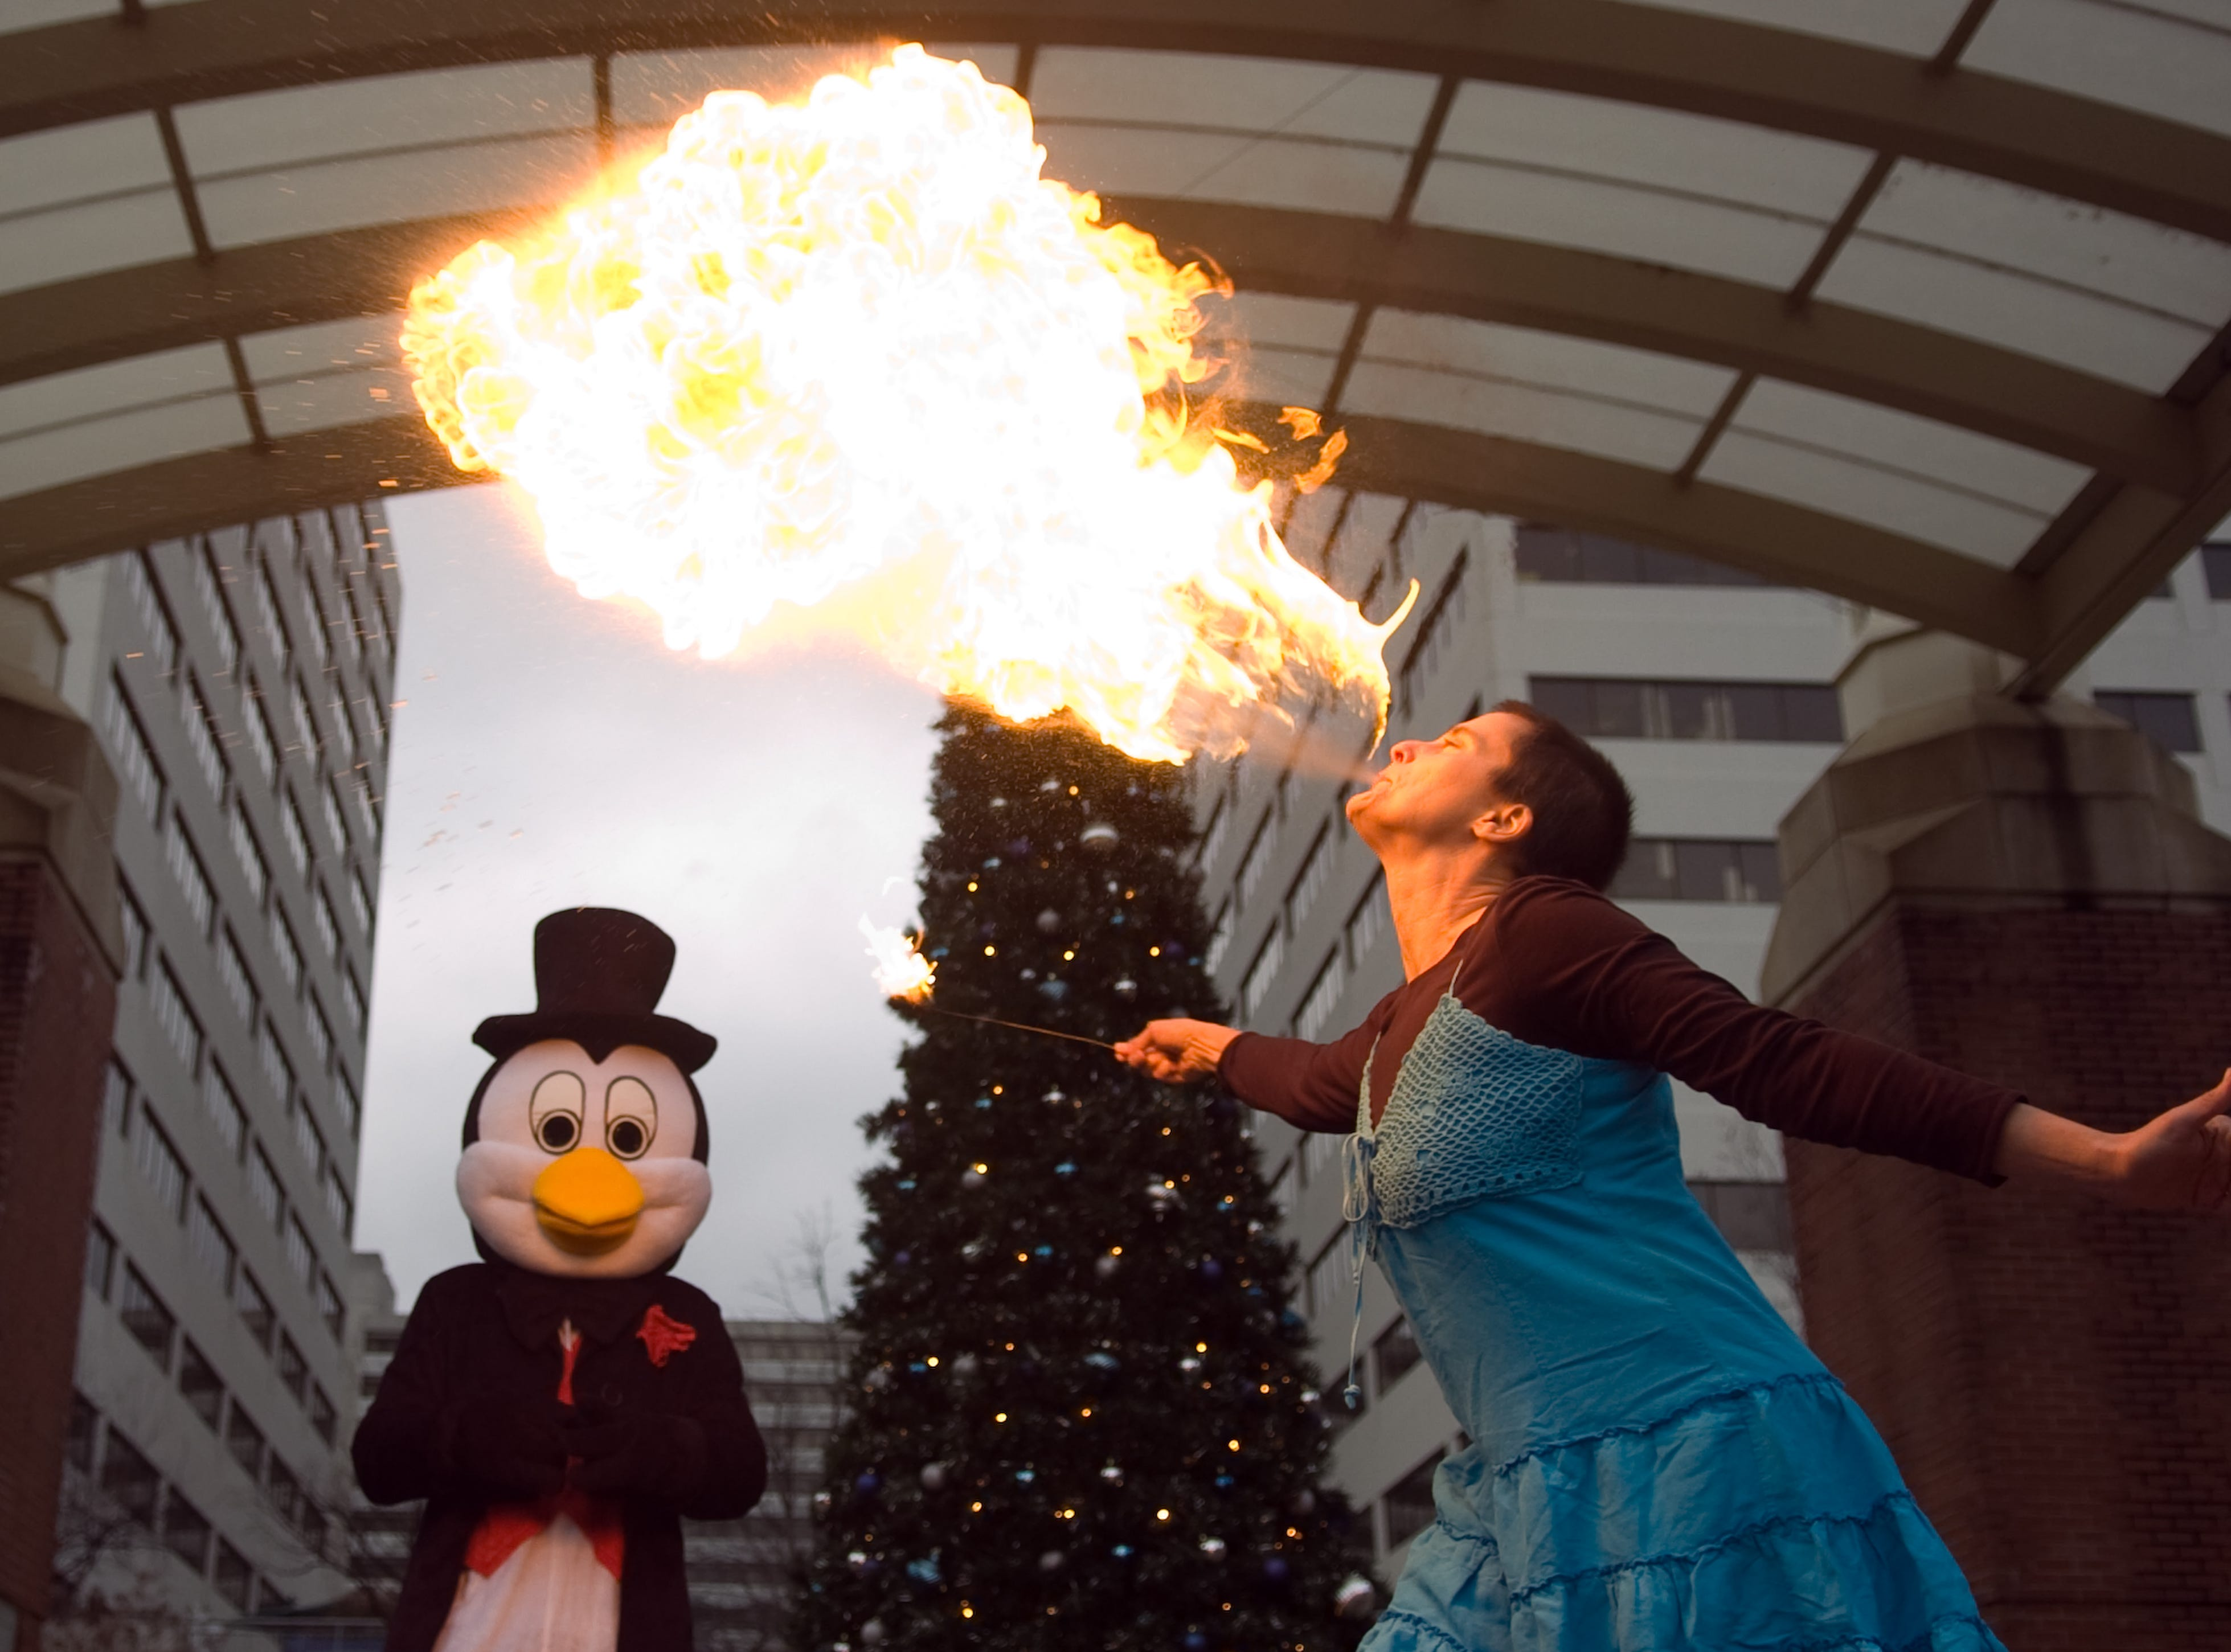 Lissa McLeod gives a demonstration on fire breathing at the Market Square stage on Monday, Nov 30, 2009. With McLeod is   Holidays on Ice mascot, Jello. The two are guests  during a press conference announcing Market Square's new year's eve celebration, First Night Knoxville.